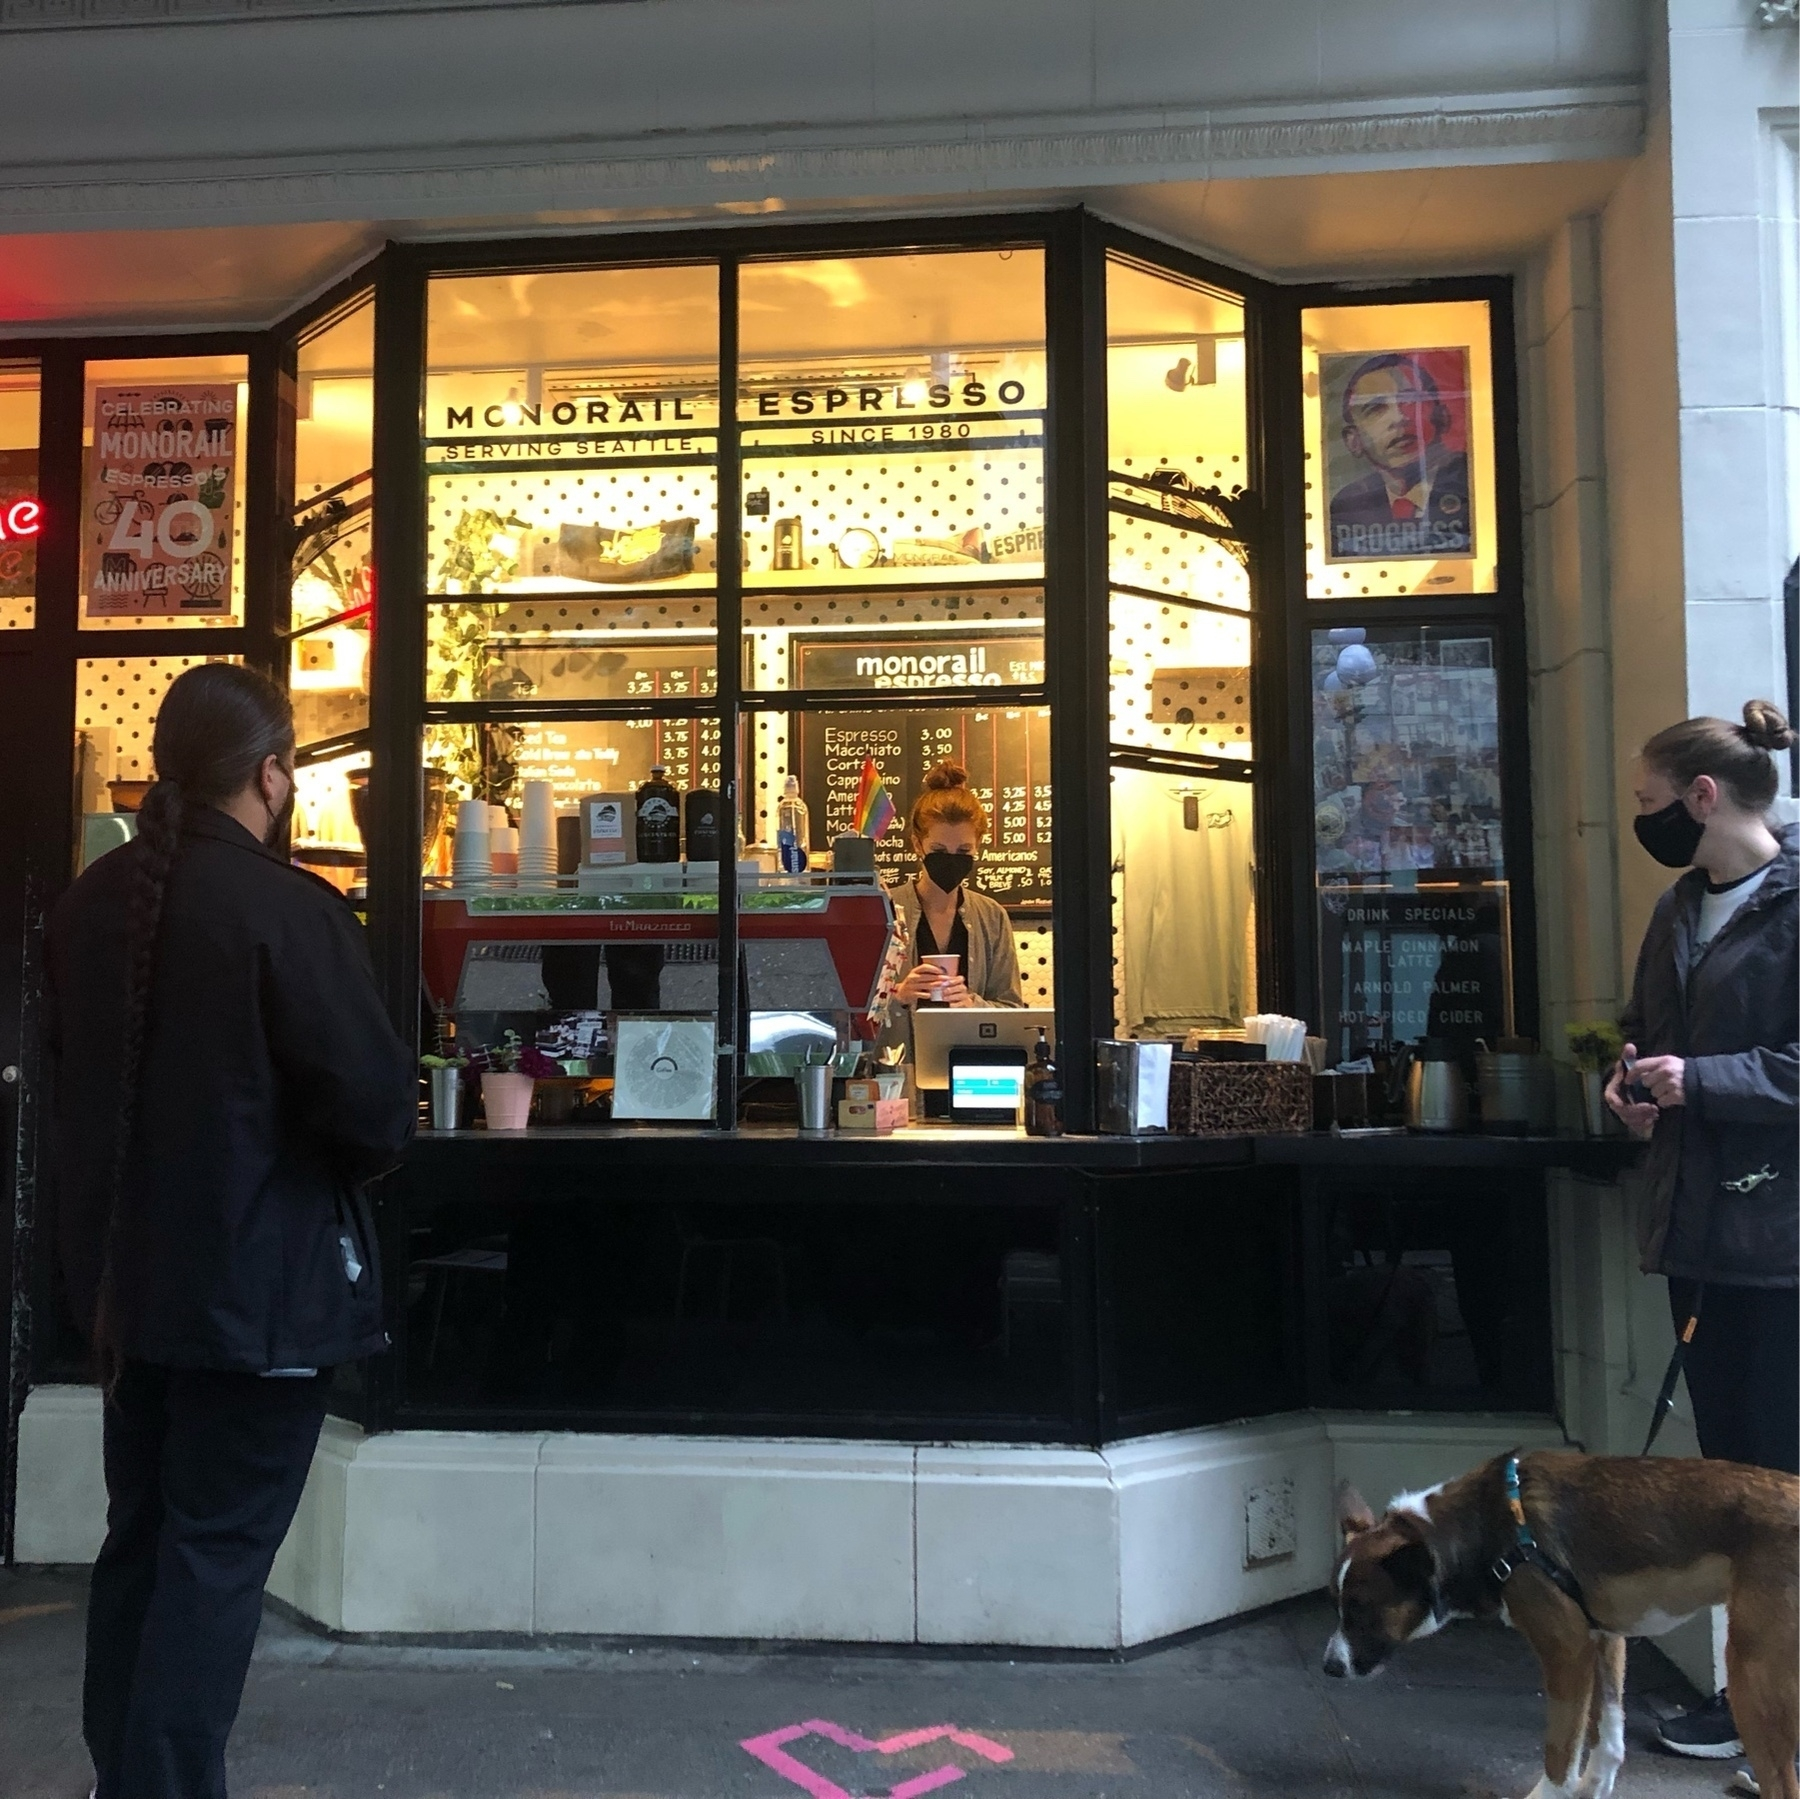 A walk-up coffee window glows yellow in the morning light. Customers wait for caffeine.